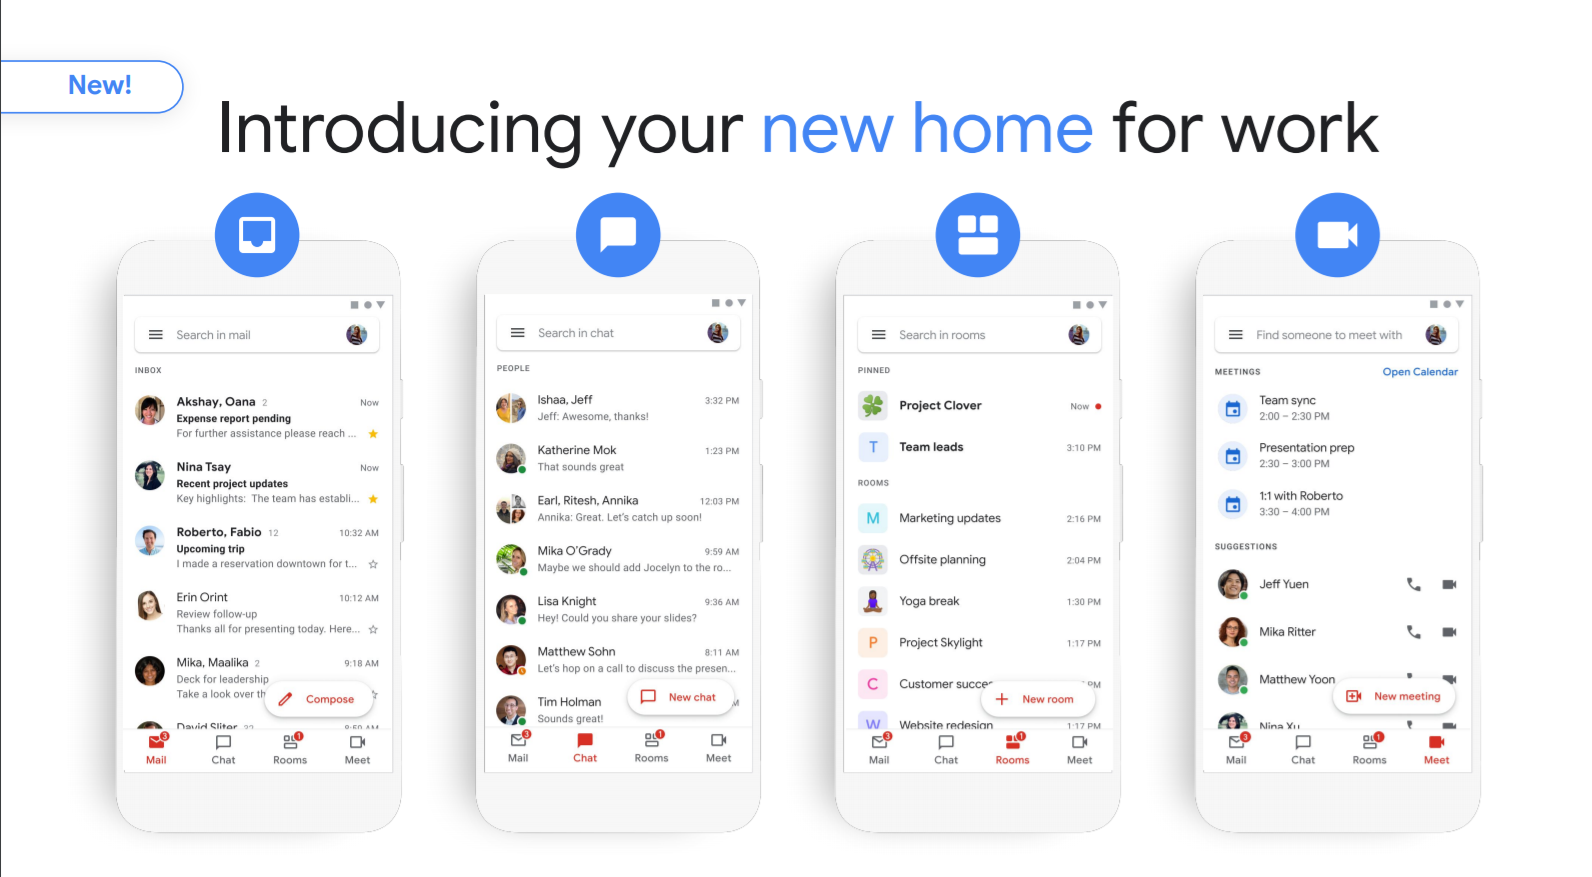 Gmail to integrate Chat, Google Meet, Rooms